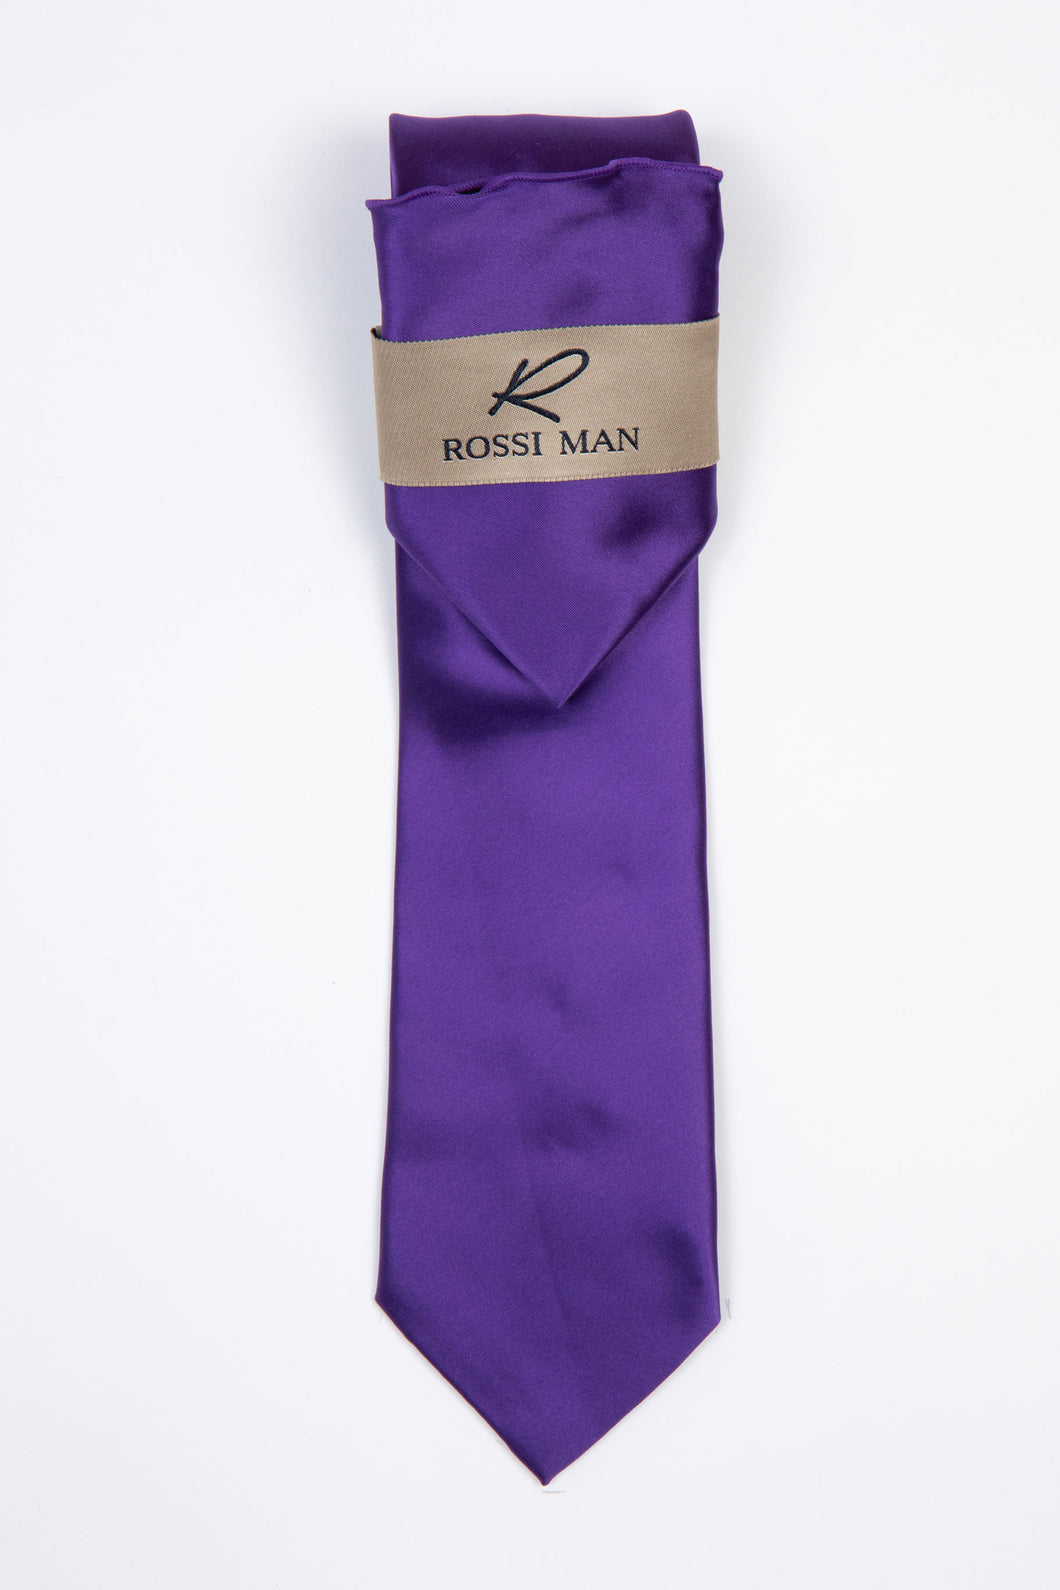 Rossi Man Tie and Pocket Round - RMR665-14